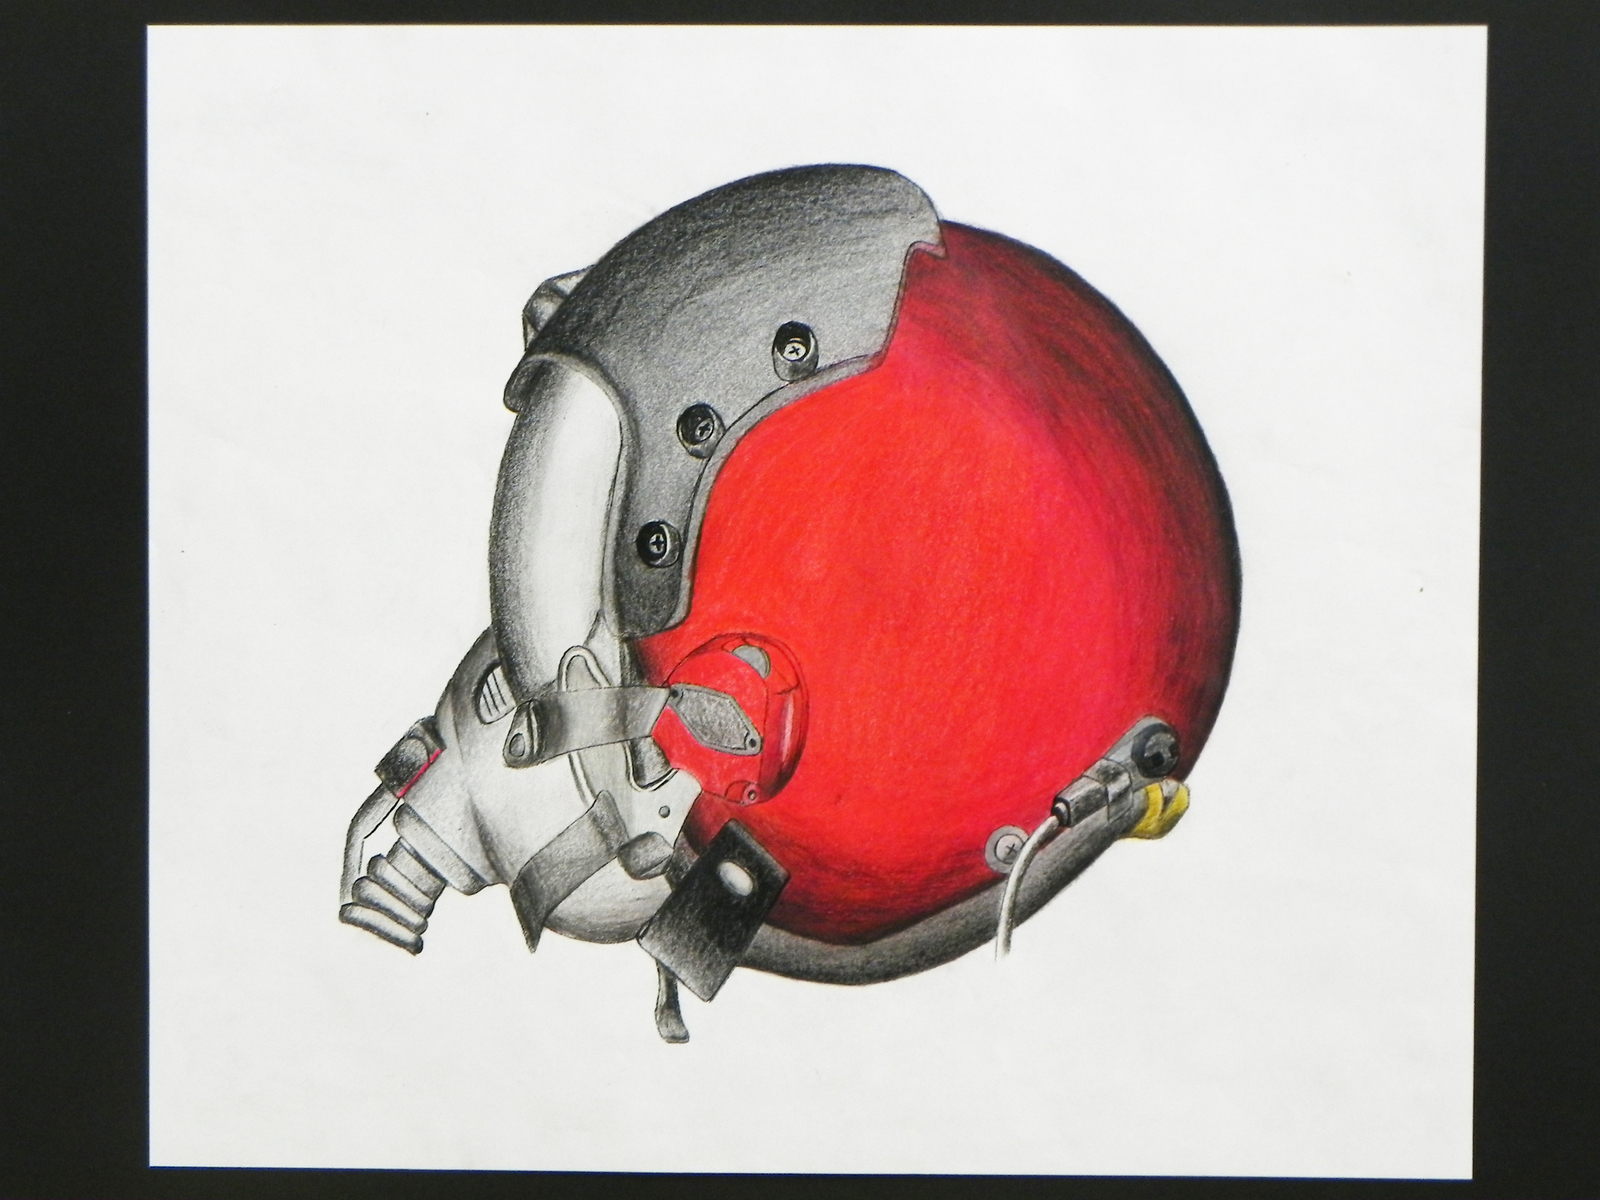 A colour pencil illustration of a fighter jet pilot's custom helmet.